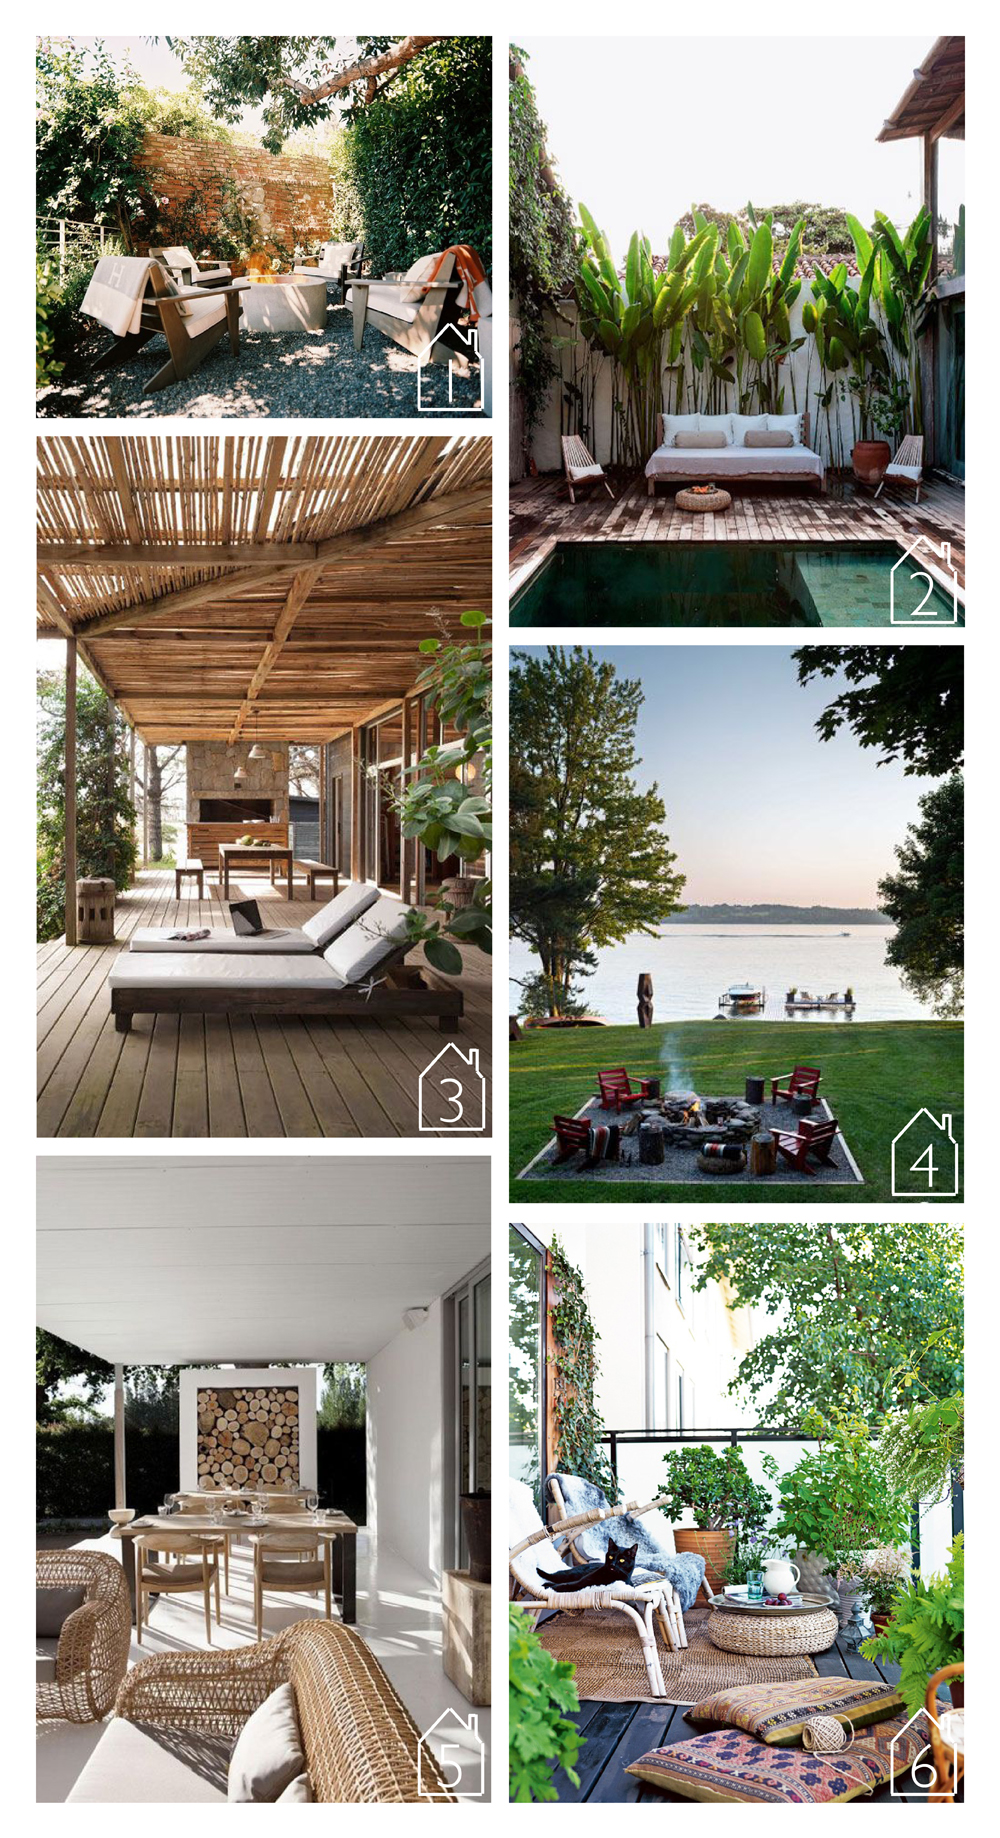 1. Via Style Files and Lonny Magazine  2. Via Style Files via Matthew Williams 3. Via Style Files by Martin Gomez Arquitectos 4. Thom Filicia's house via House Beautiful  5. Via Style Files  by Maison Estate  6. Via Elle Interior by Emma Persson Lagerberg photo by Petra Bindel